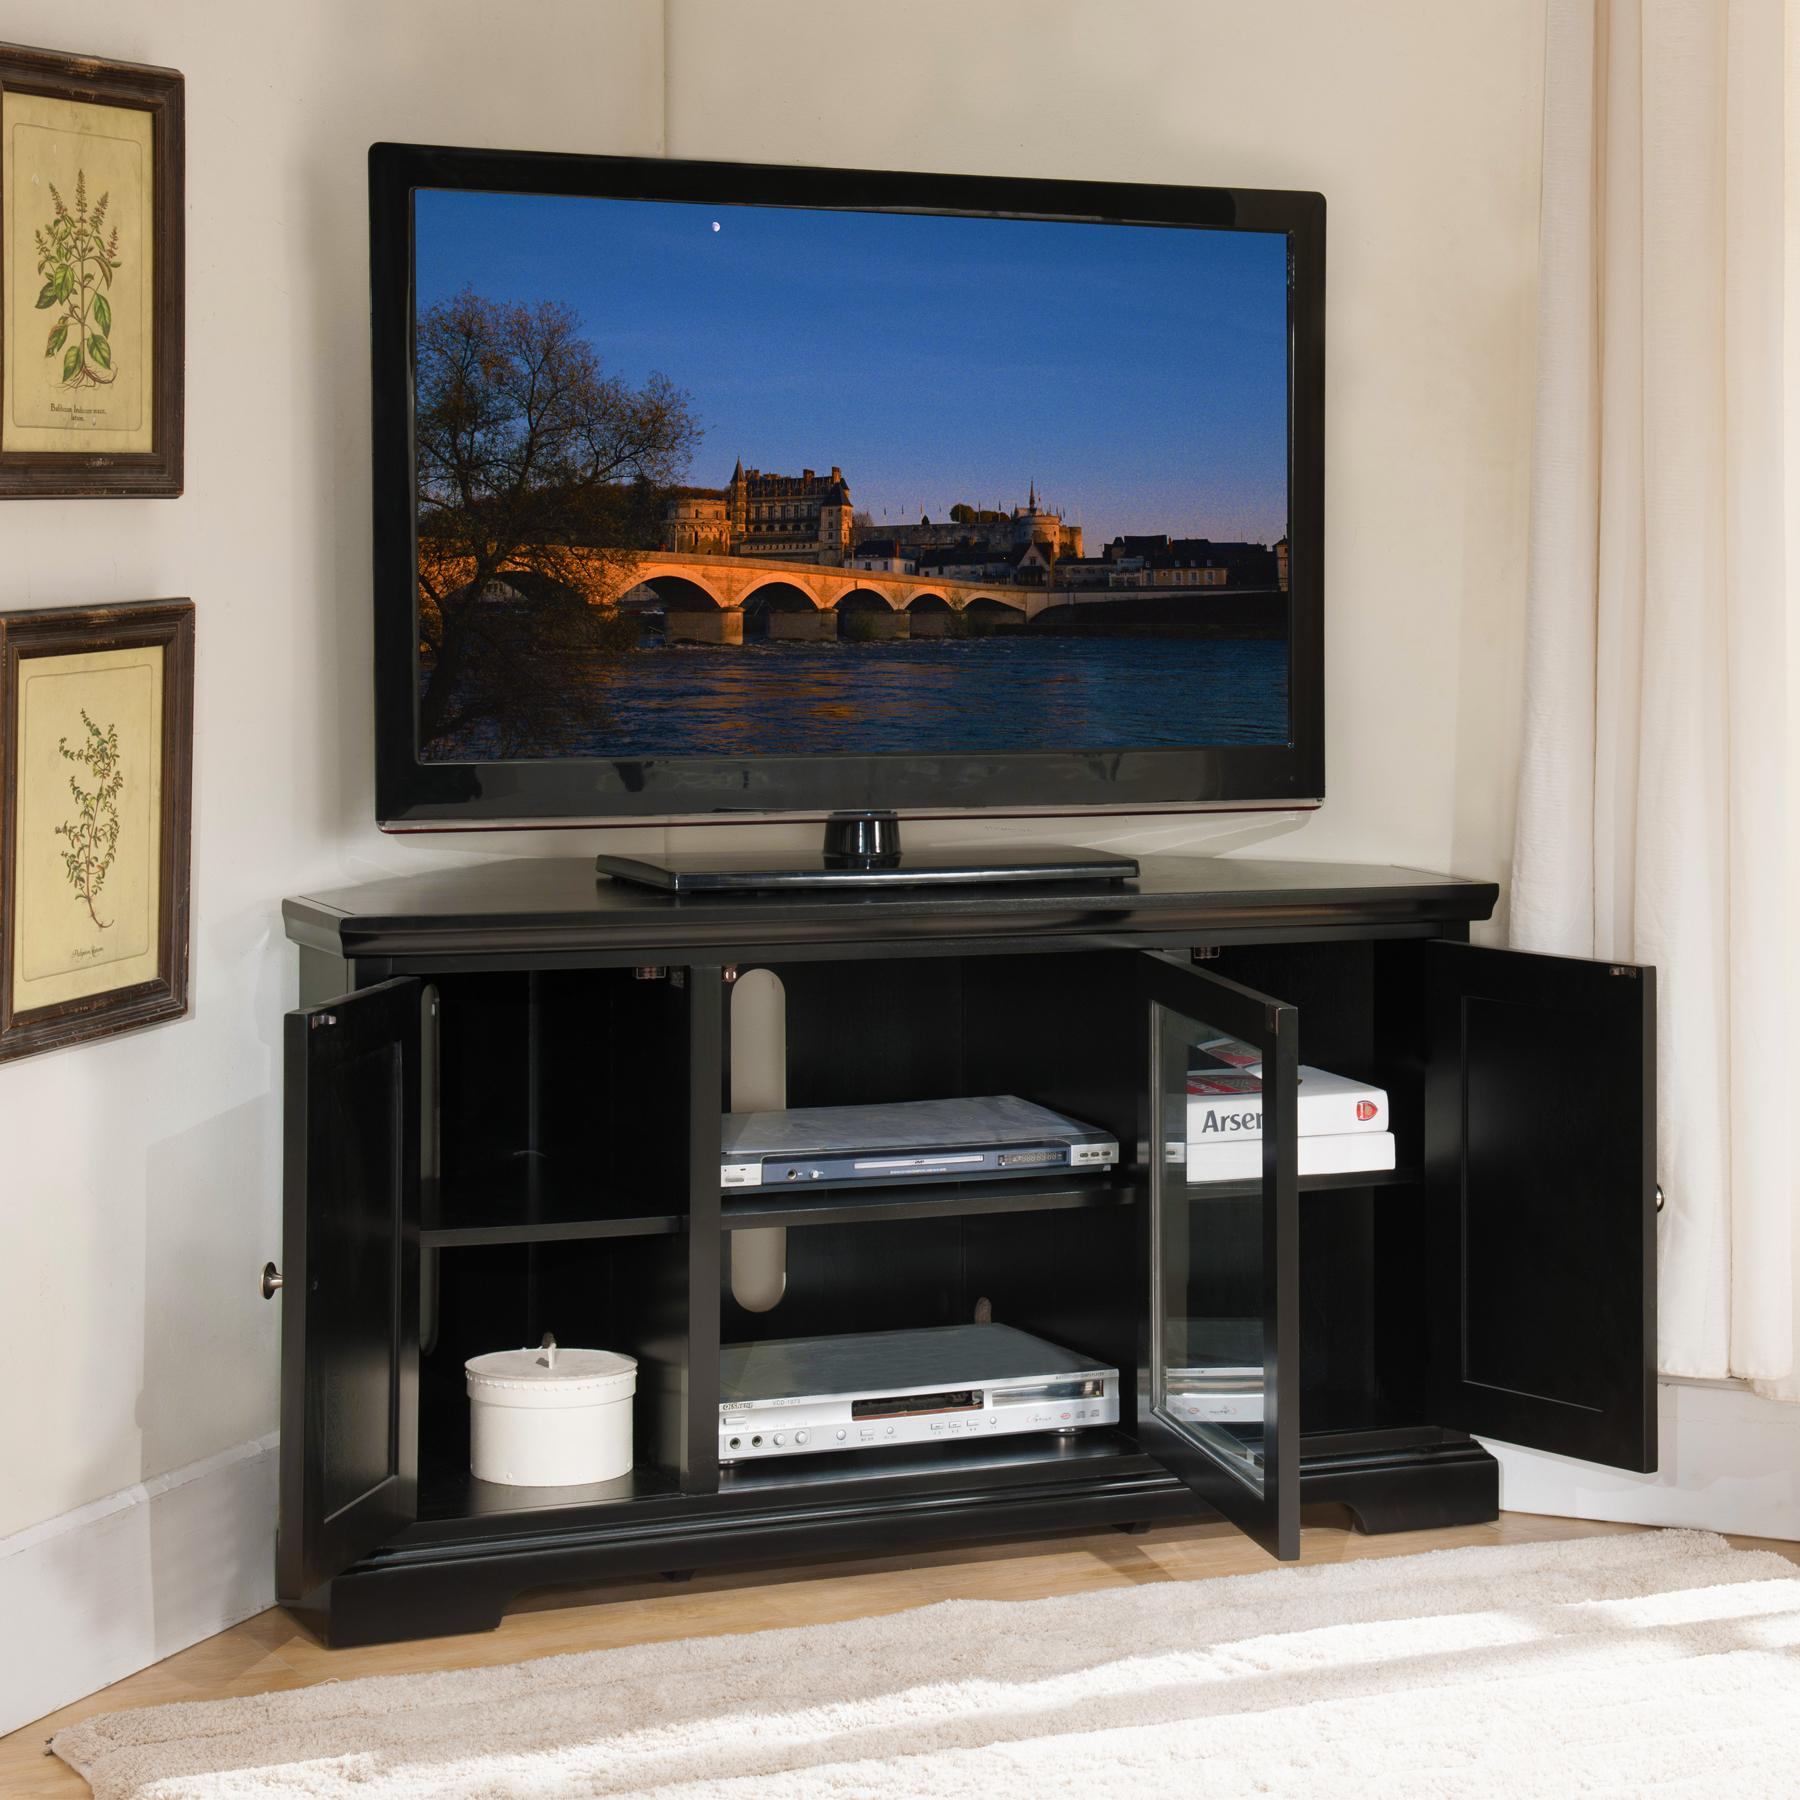 leick black hardwood corner tv stand 56 inch. Black Bedroom Furniture Sets. Home Design Ideas